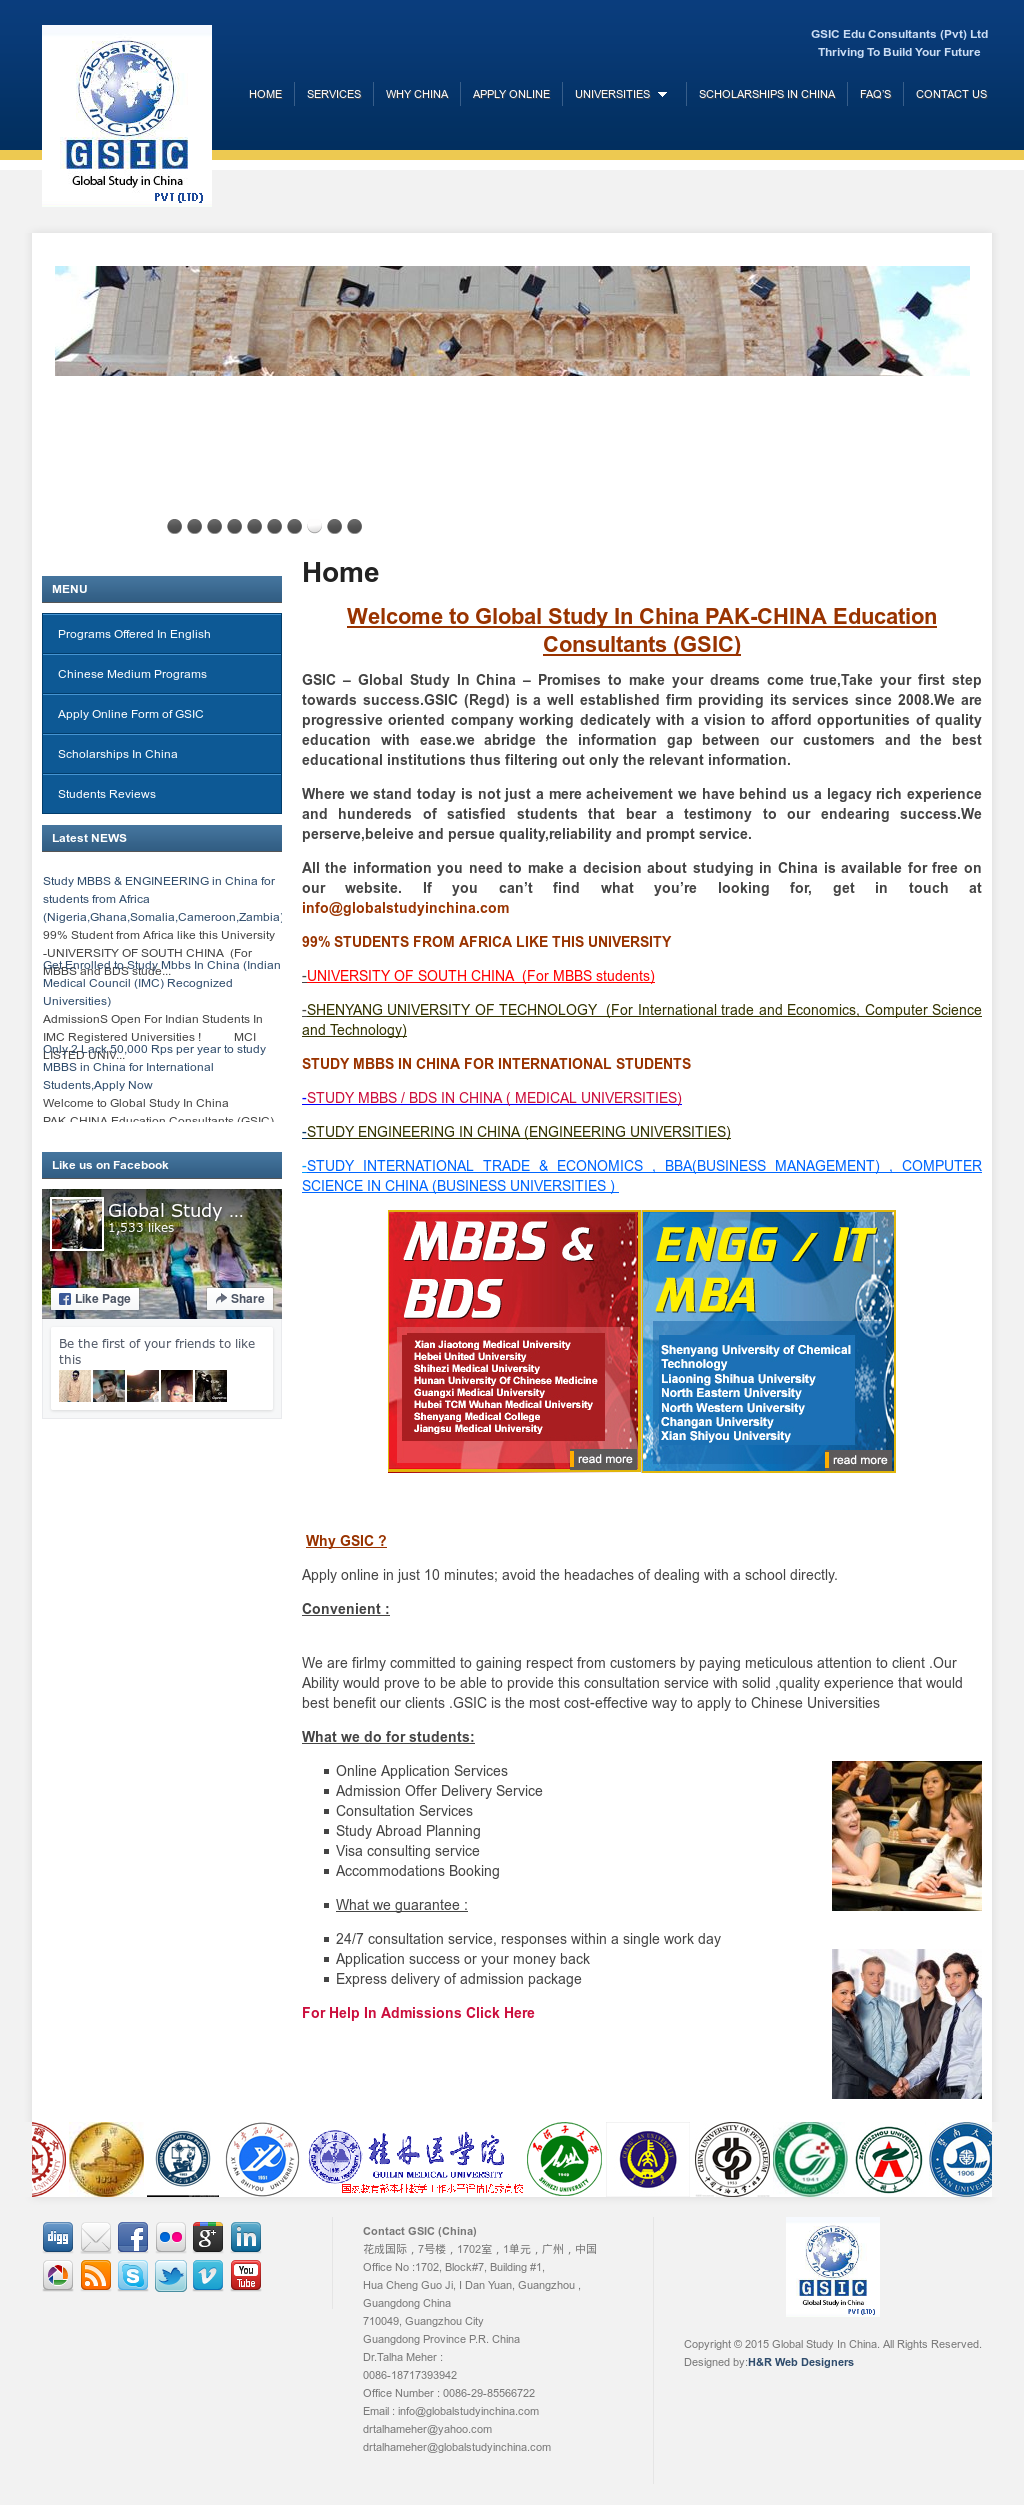 Global Study Engineering And Mbbs In China (Dr  Talha Meher